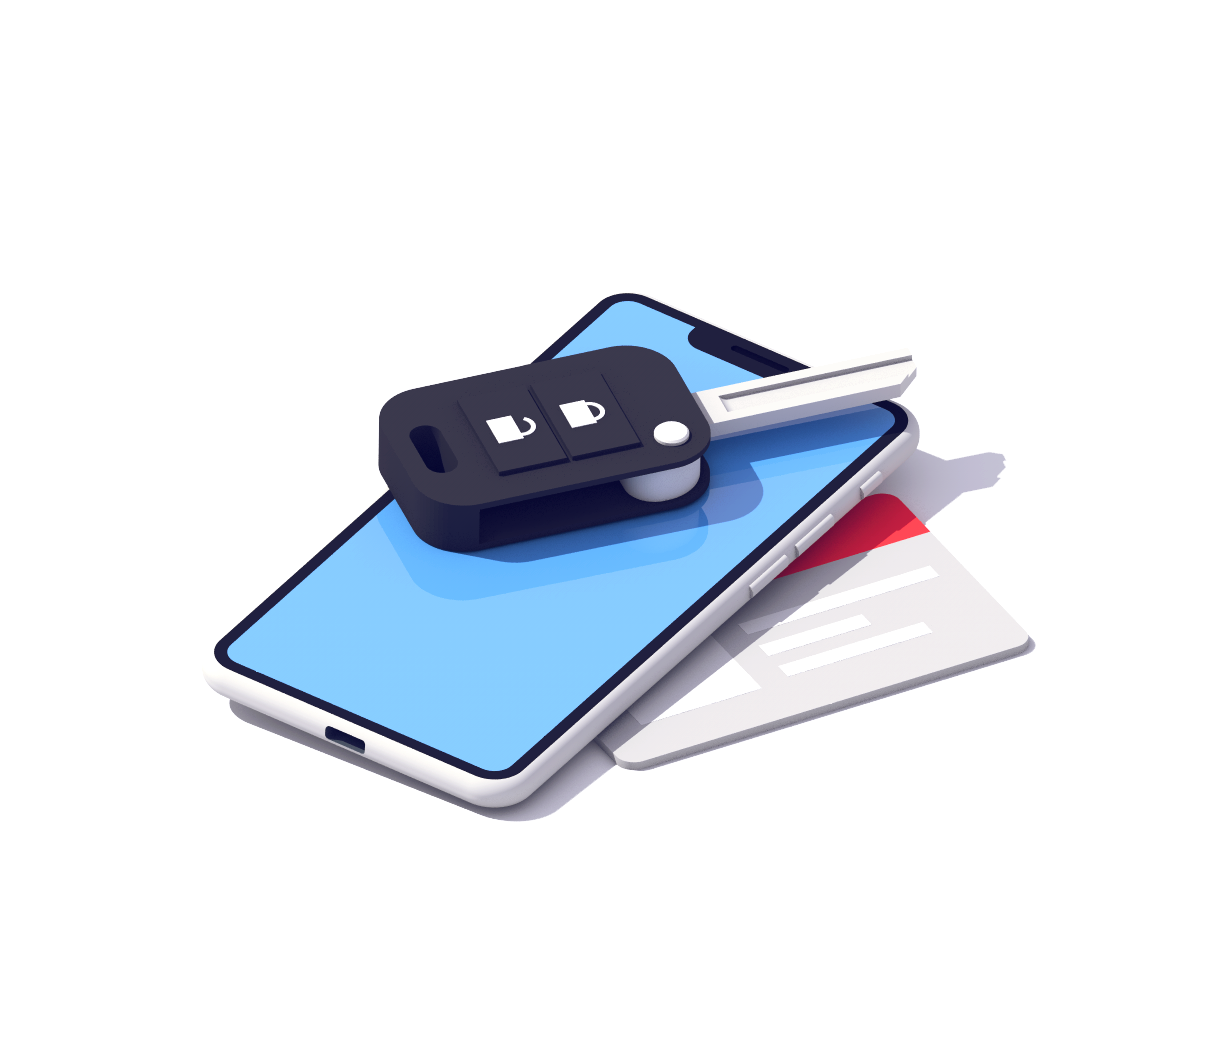 iPhone, car key, and credit card illustration